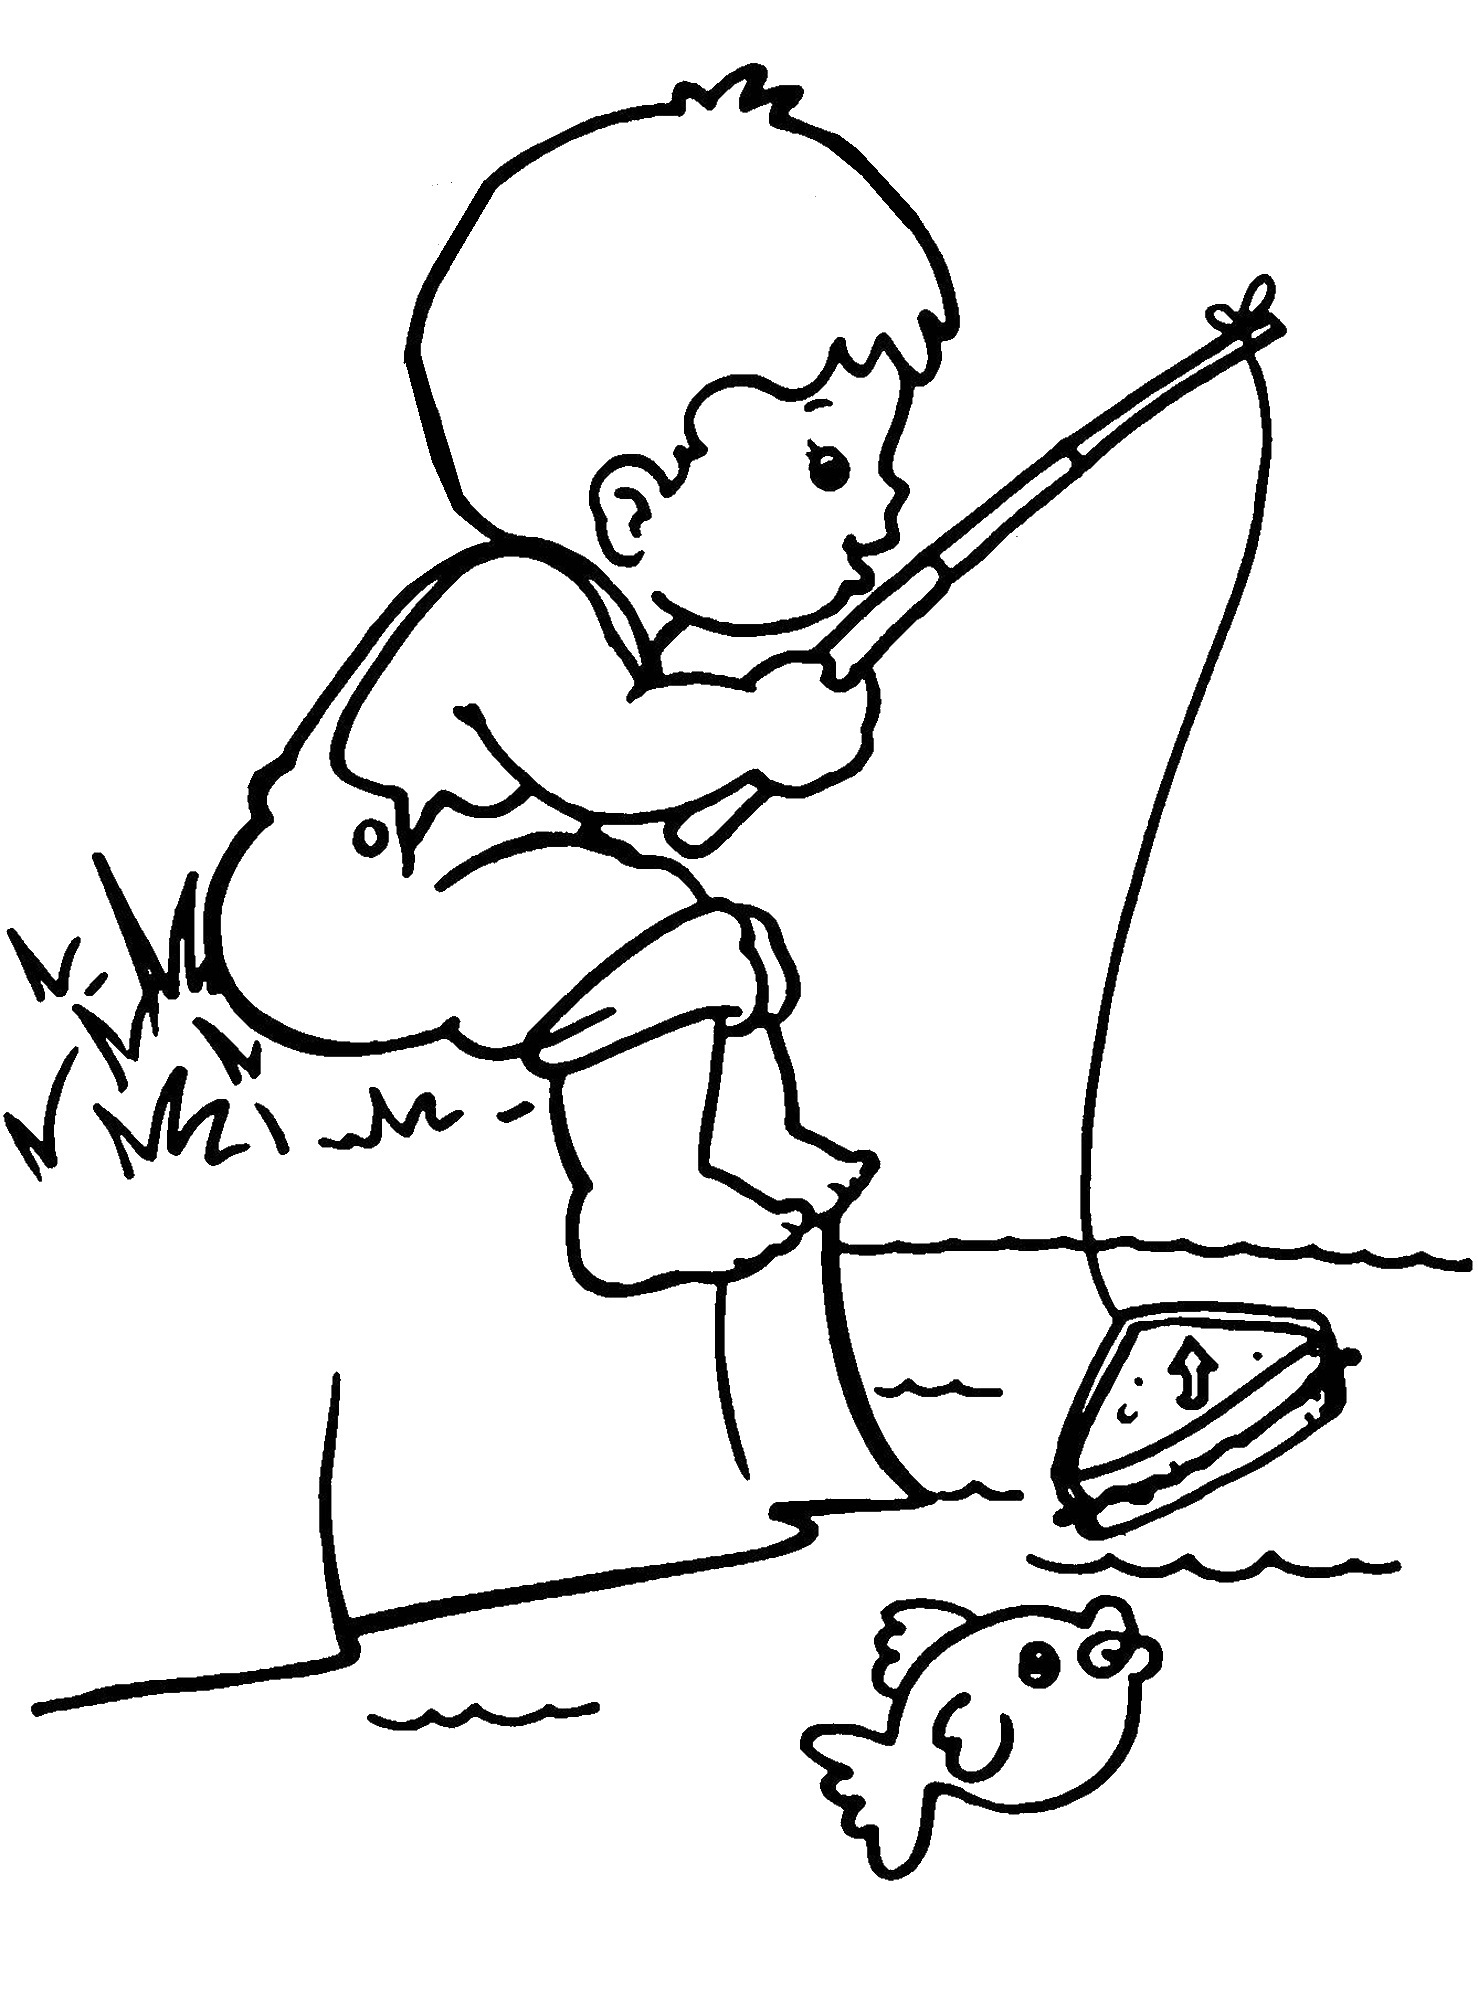 coloring pages for little kids - photo#46